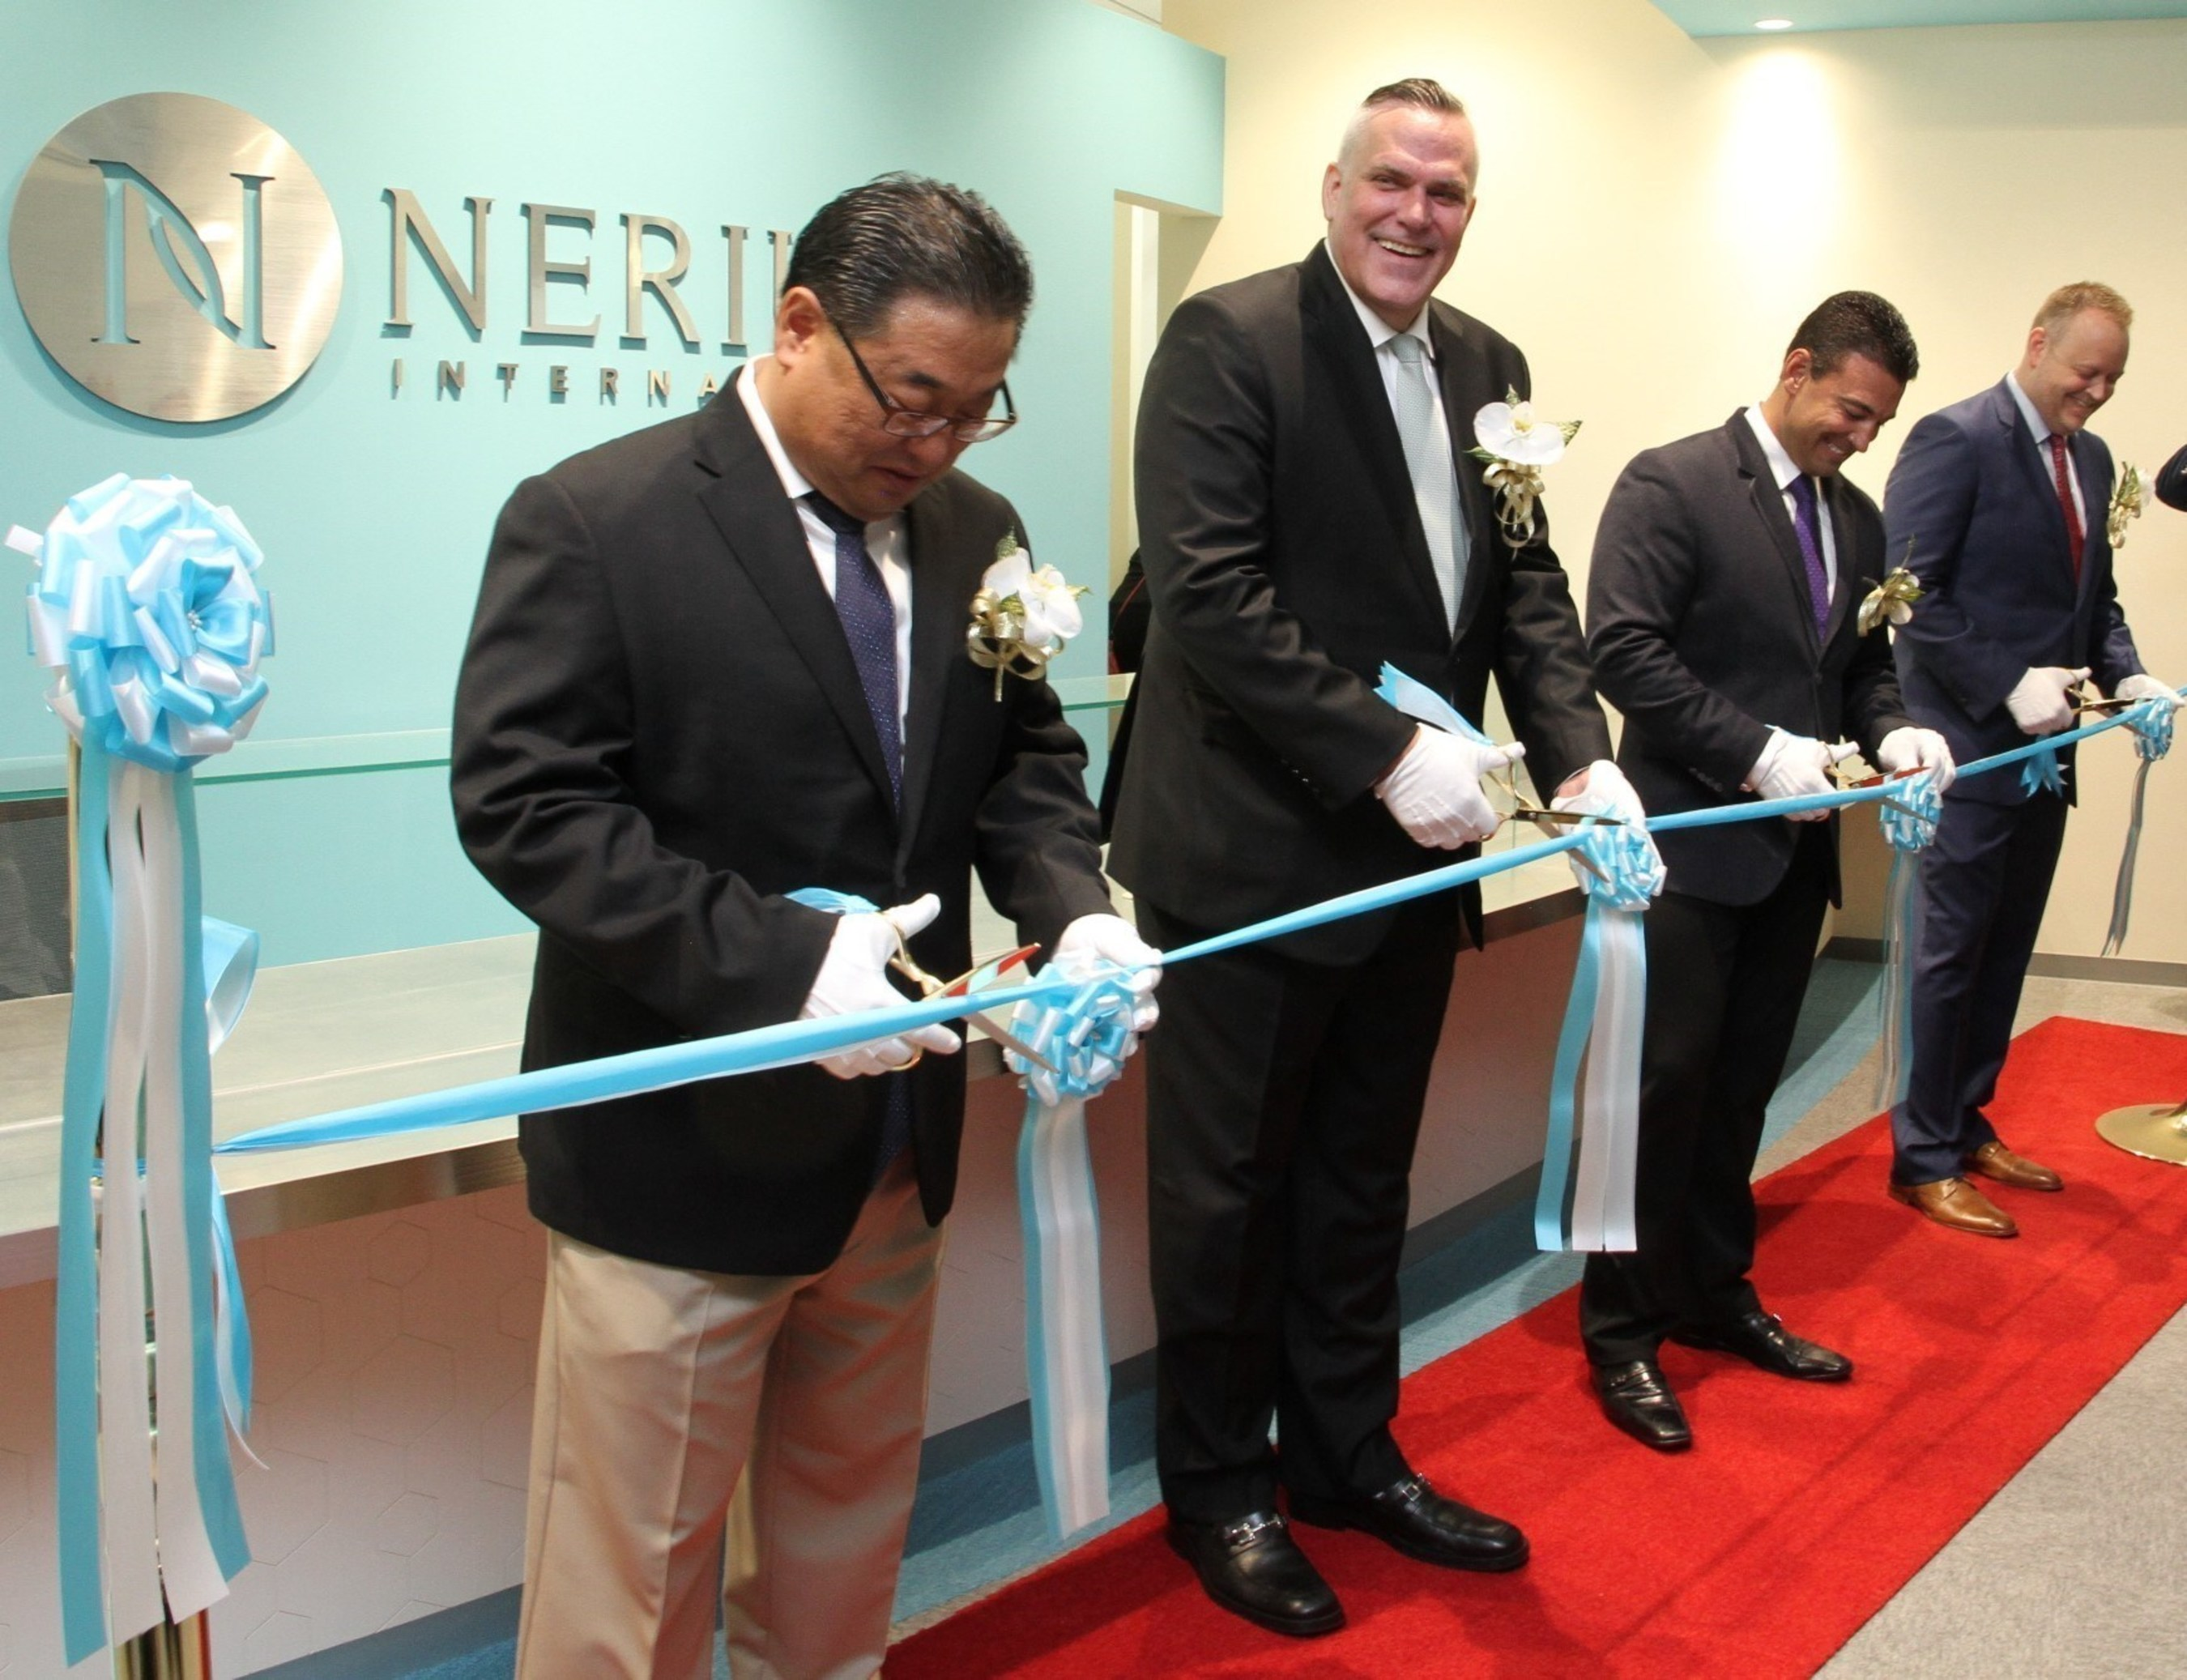 The Nerium Japan Brand Center opened on July 11 in Tokyo. Nerium executives shown left to right include General Manager of Korea BJ Choi, General Manager of Japan Peter Dale, Chief Field Officer  Mark Smith and General Counsel Eric Haynes.